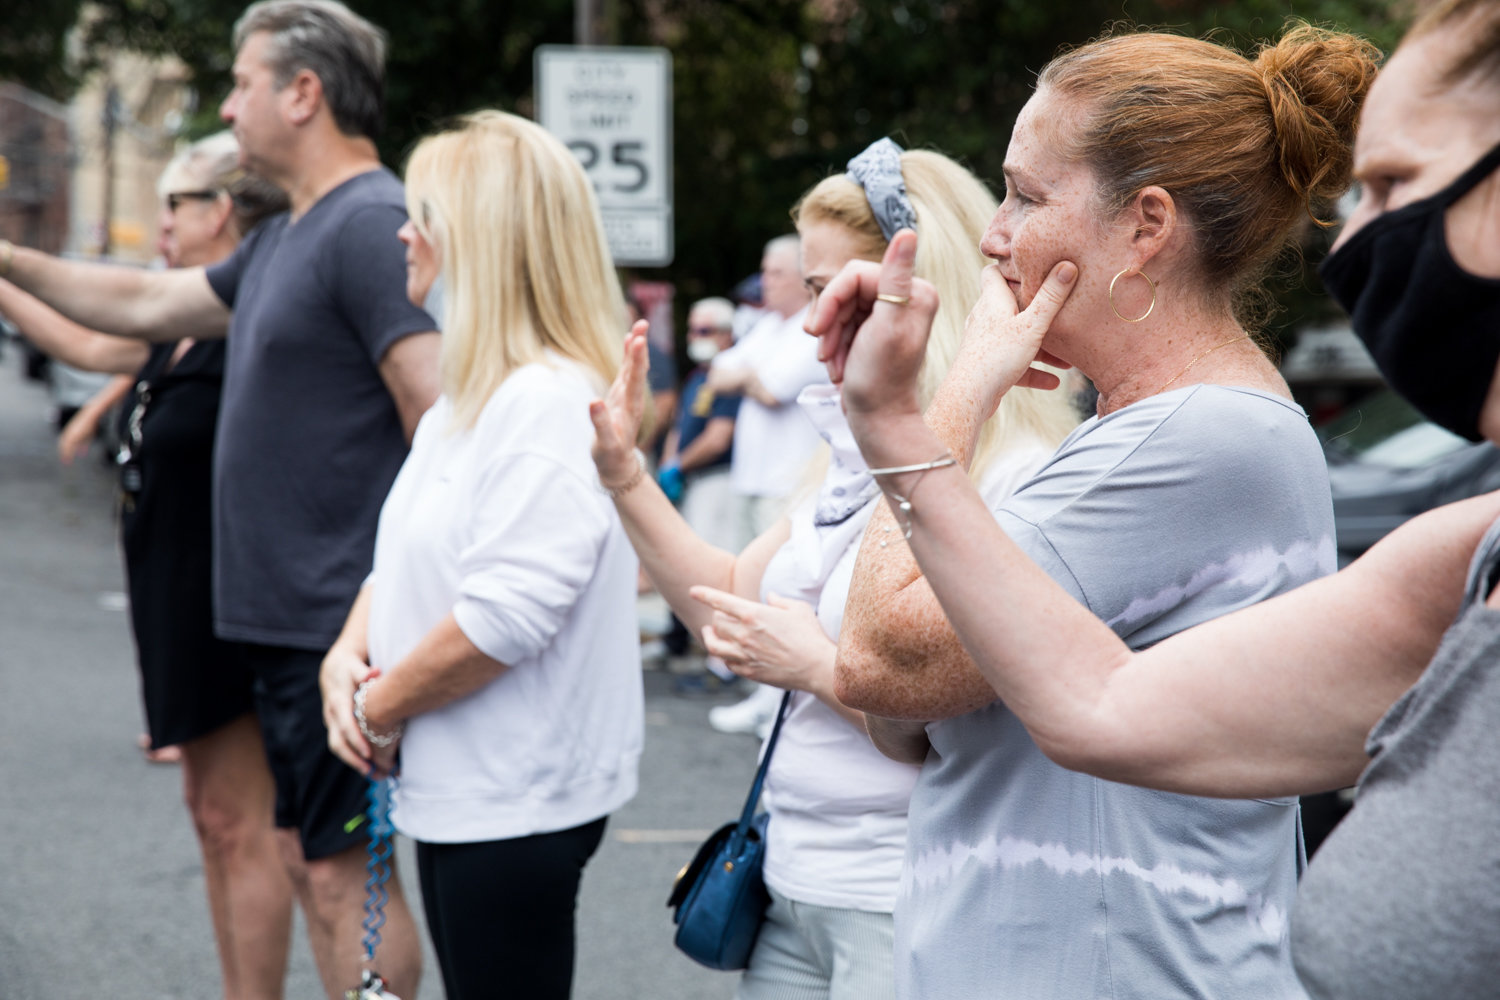 Mourners wave at a funeral procession for the late Michael Rooney on Mosholu Avenue. The procession down the avenue where Rooney lived was organized in light of the coronavirus pandemic to give those who knew him a chance to gather.